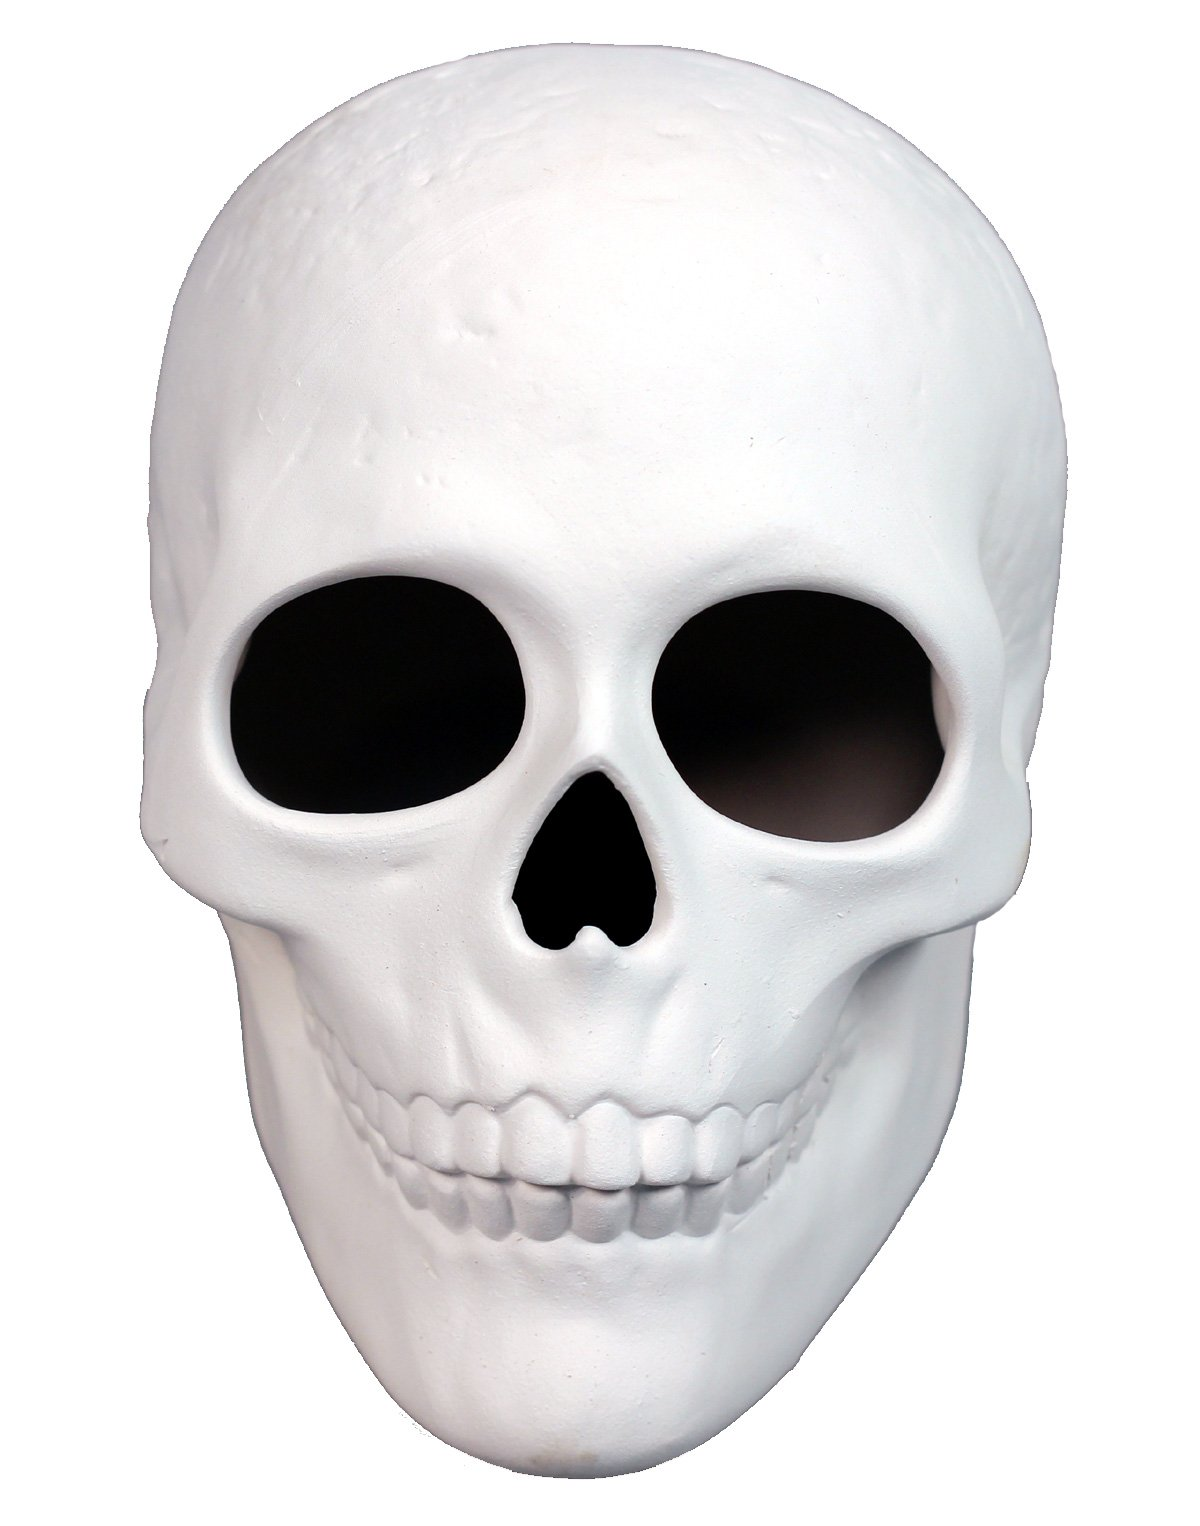 Ready To Paint Ceramic Bisque, 5 Inch Long x 4 Inch Tall Skull, Includes How To Paint Your Own Pottery Booklet